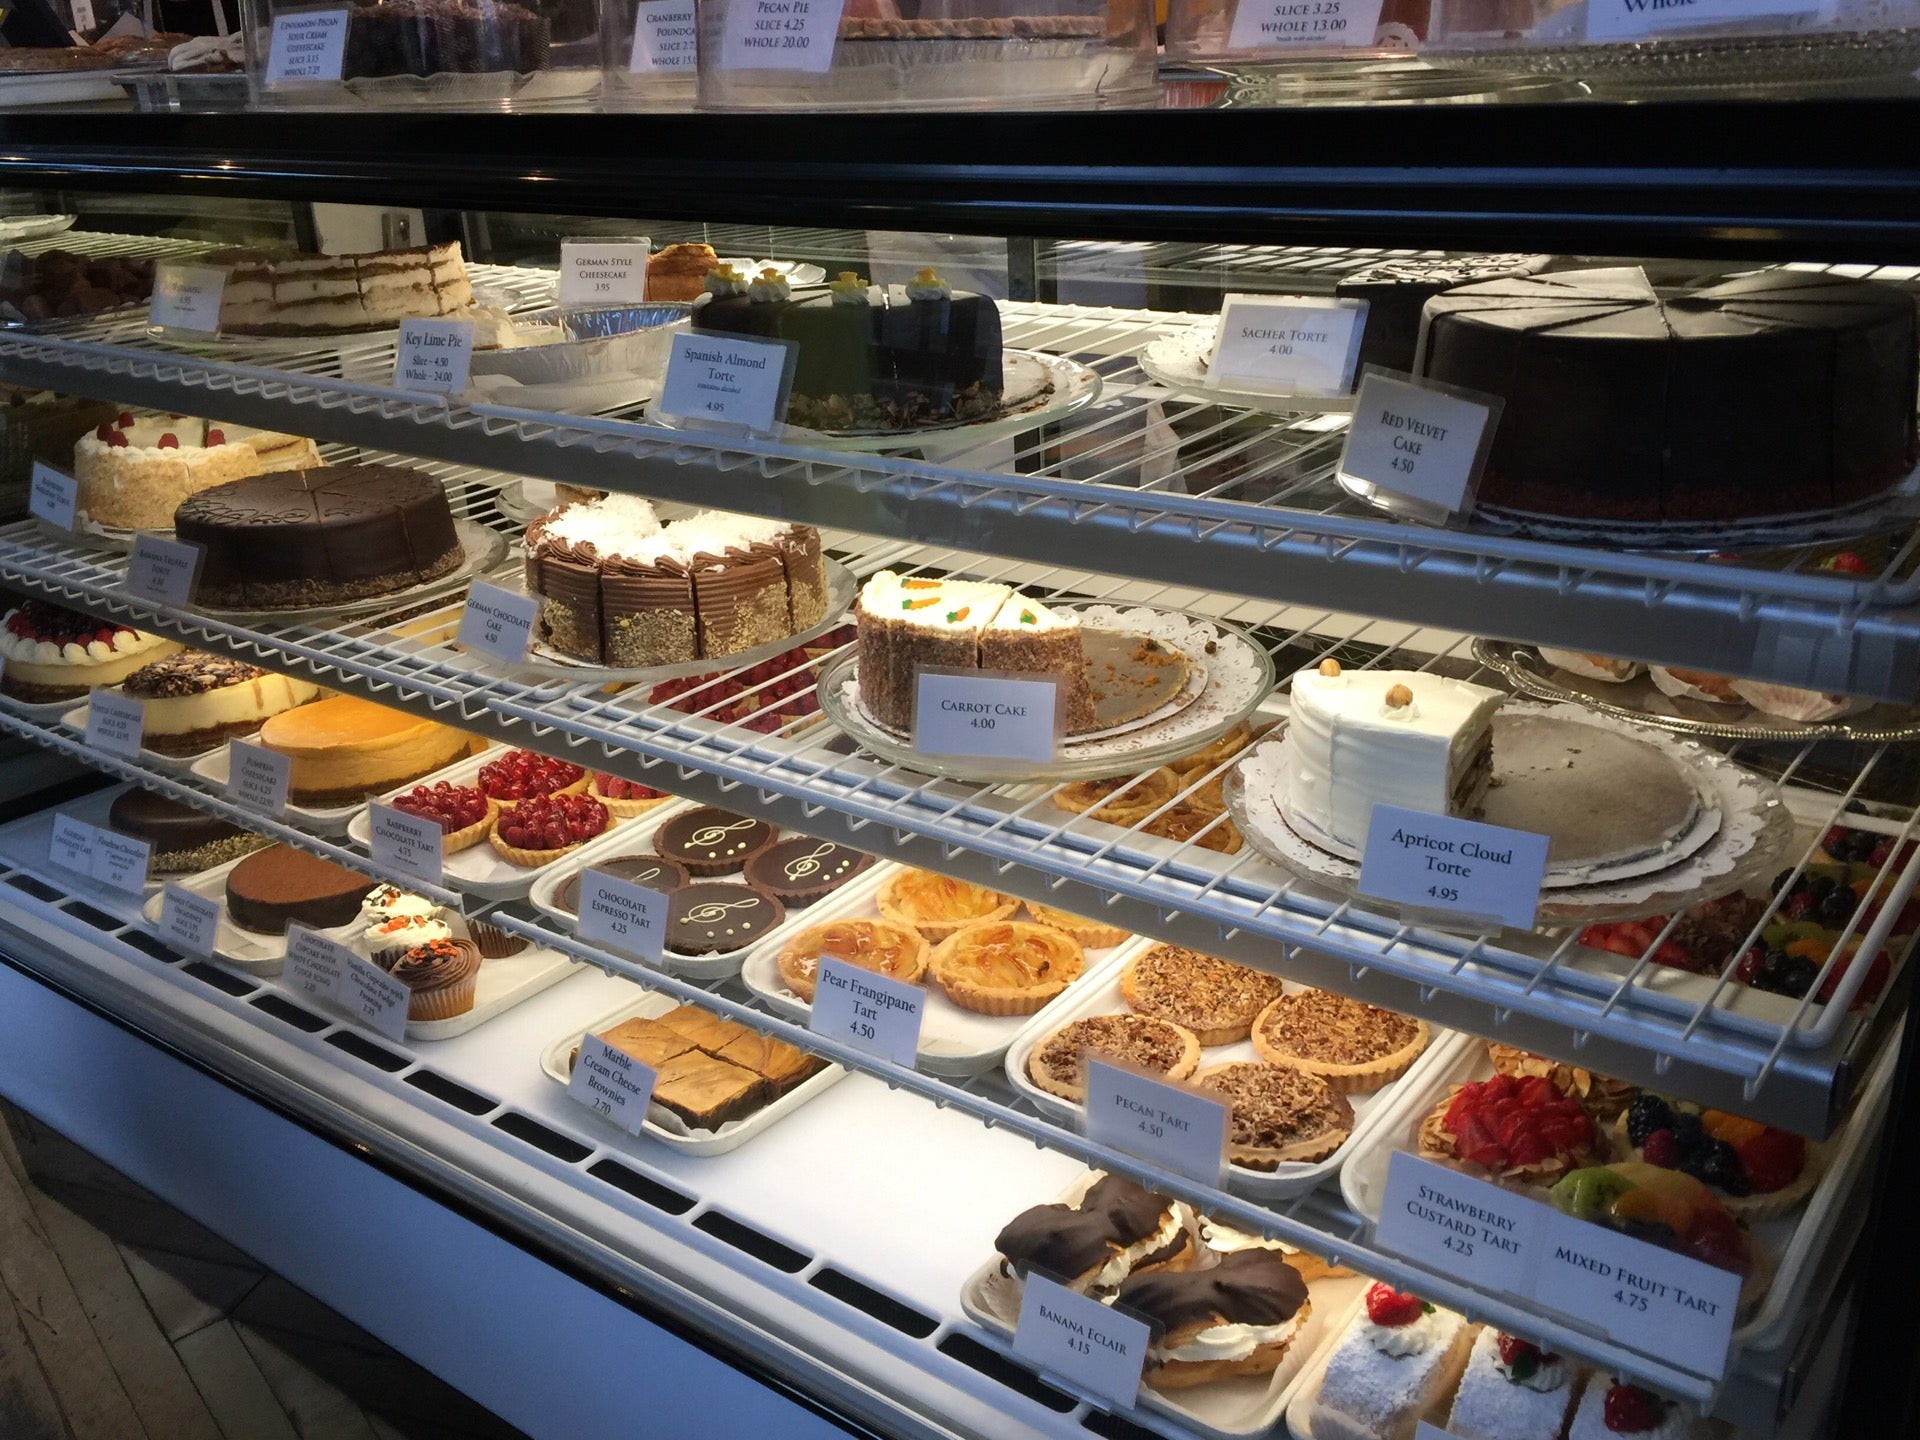 Cafe Selmarie Bakery - Top Brunch Restaurants Chicago No-Reservation NextME Waitlist App